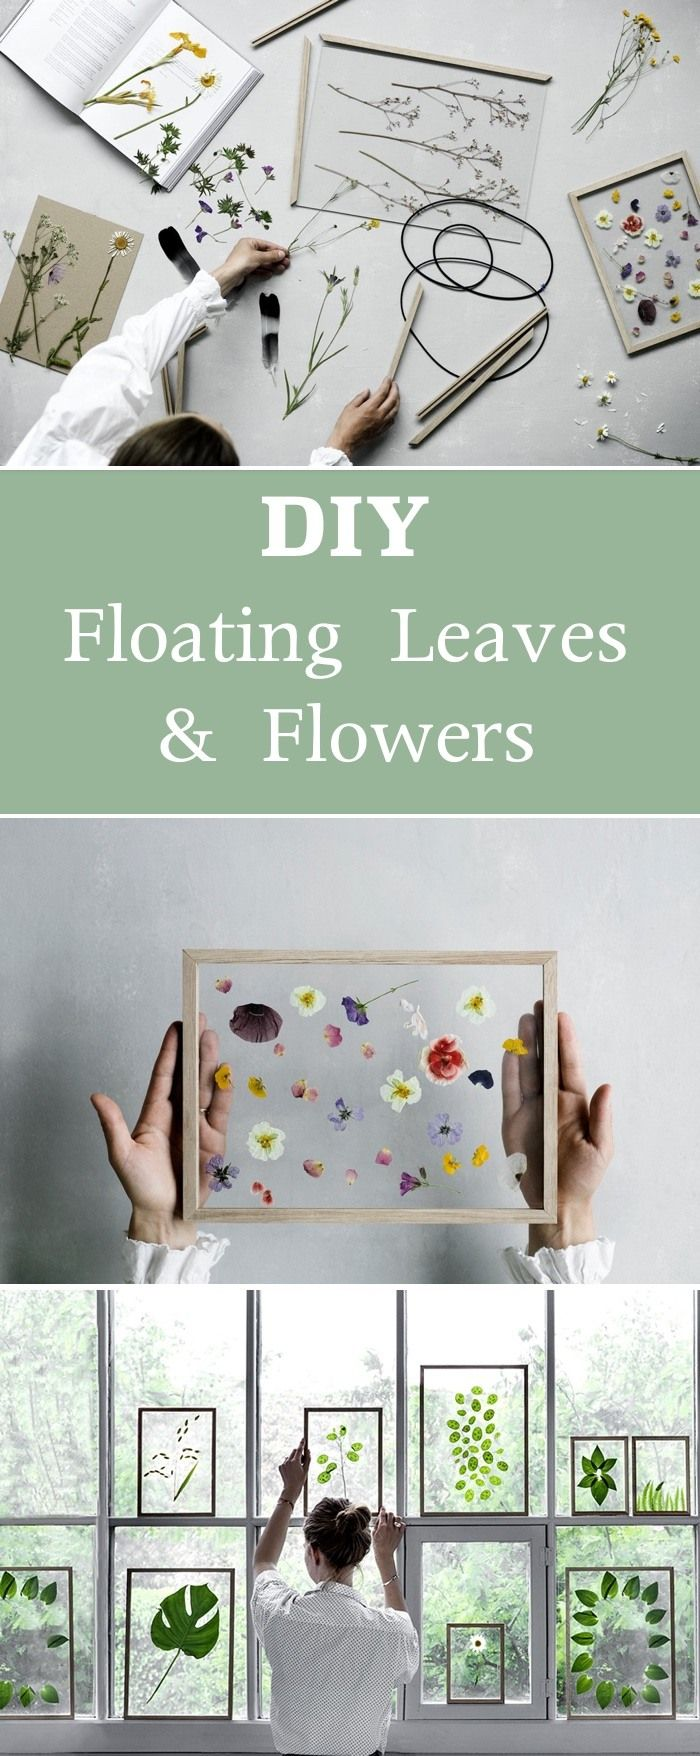 Uncategorized Diy Art Projects For Home 25 unique diy art projects ideas on pinterest arts and crafts 17 easy home decor craft projects